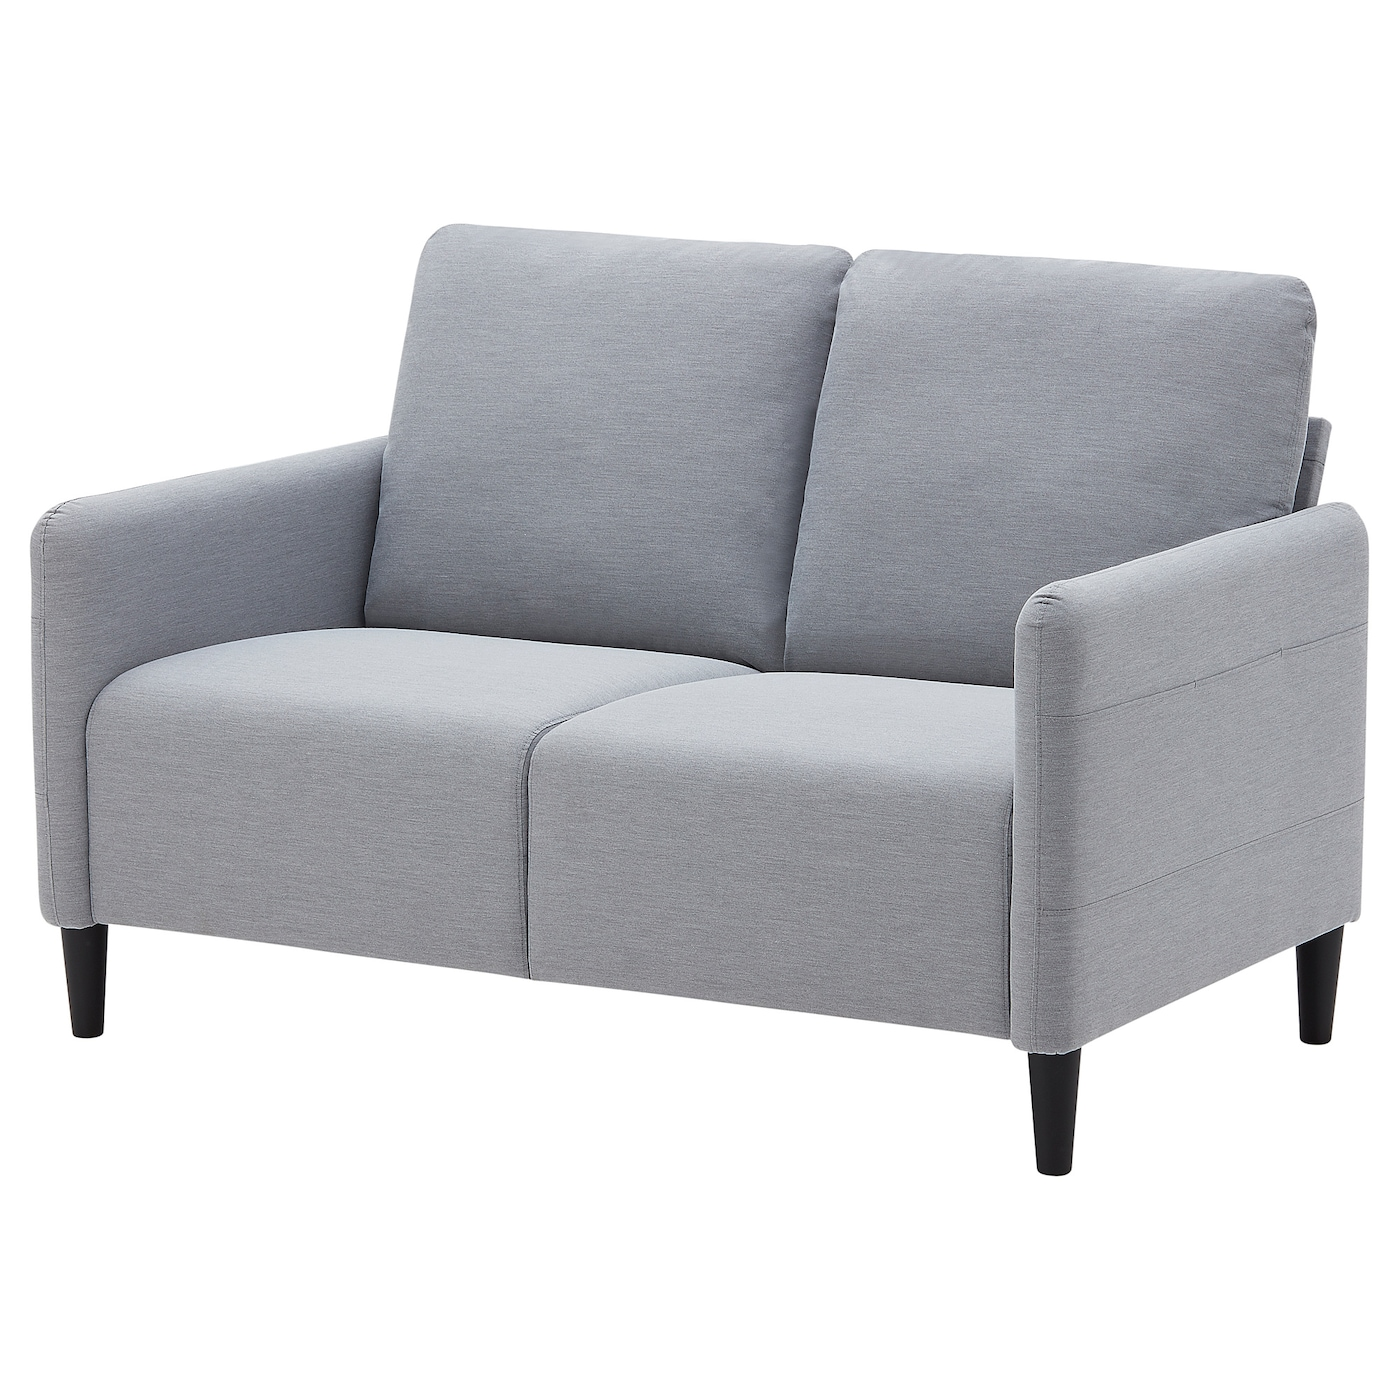 Angersby 2 Seat Sofa Knisa Light Grey